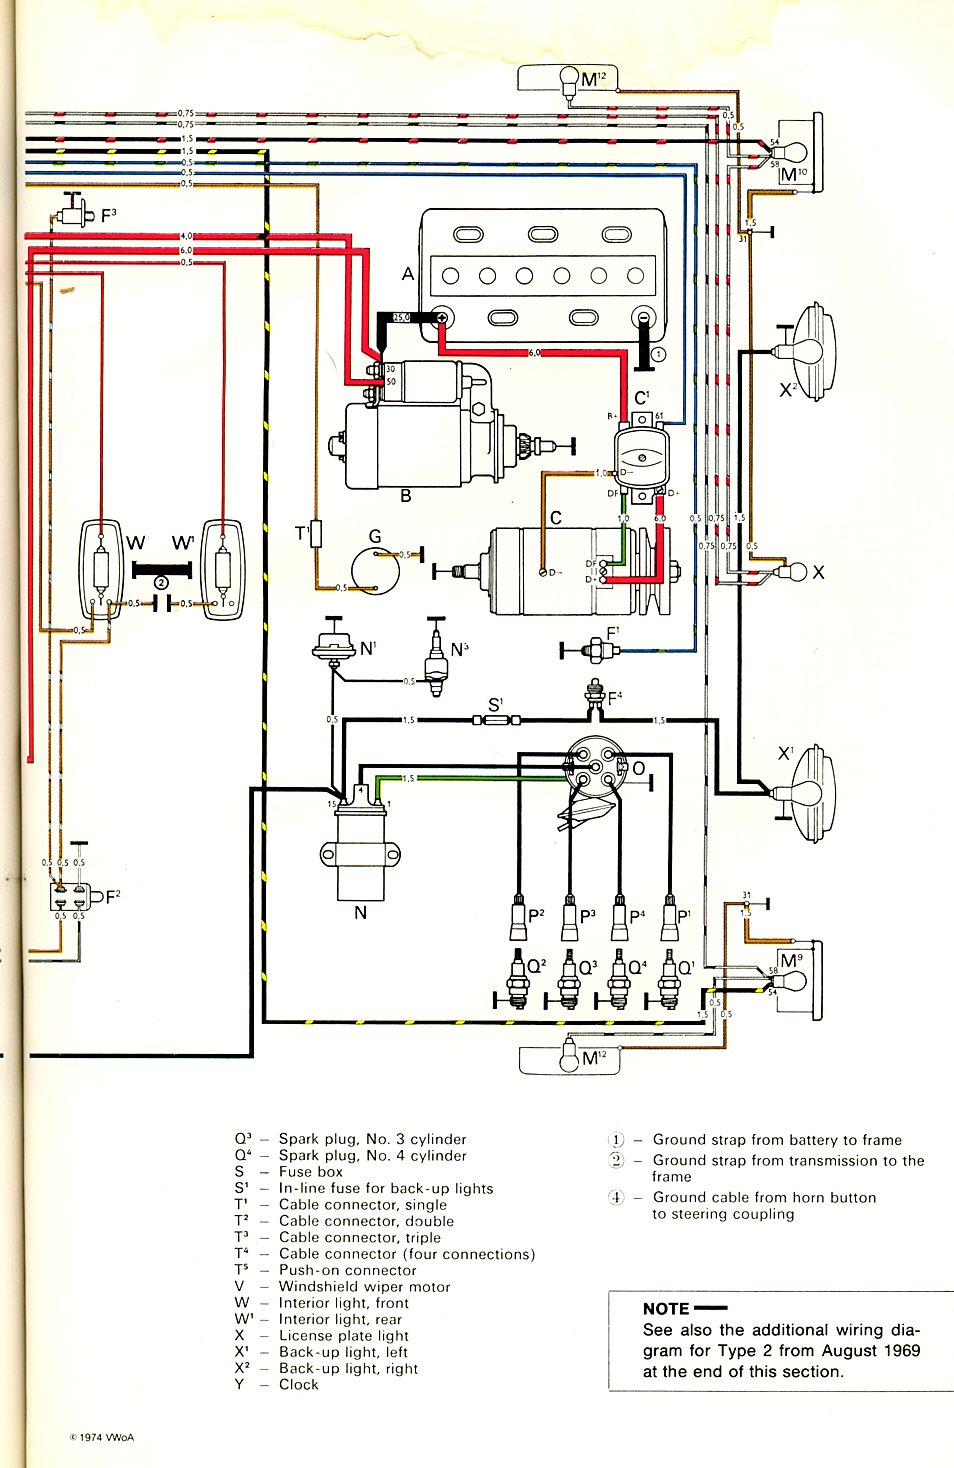 Type 2 Wiring Diagrams 1964 Volkswagen Diagram